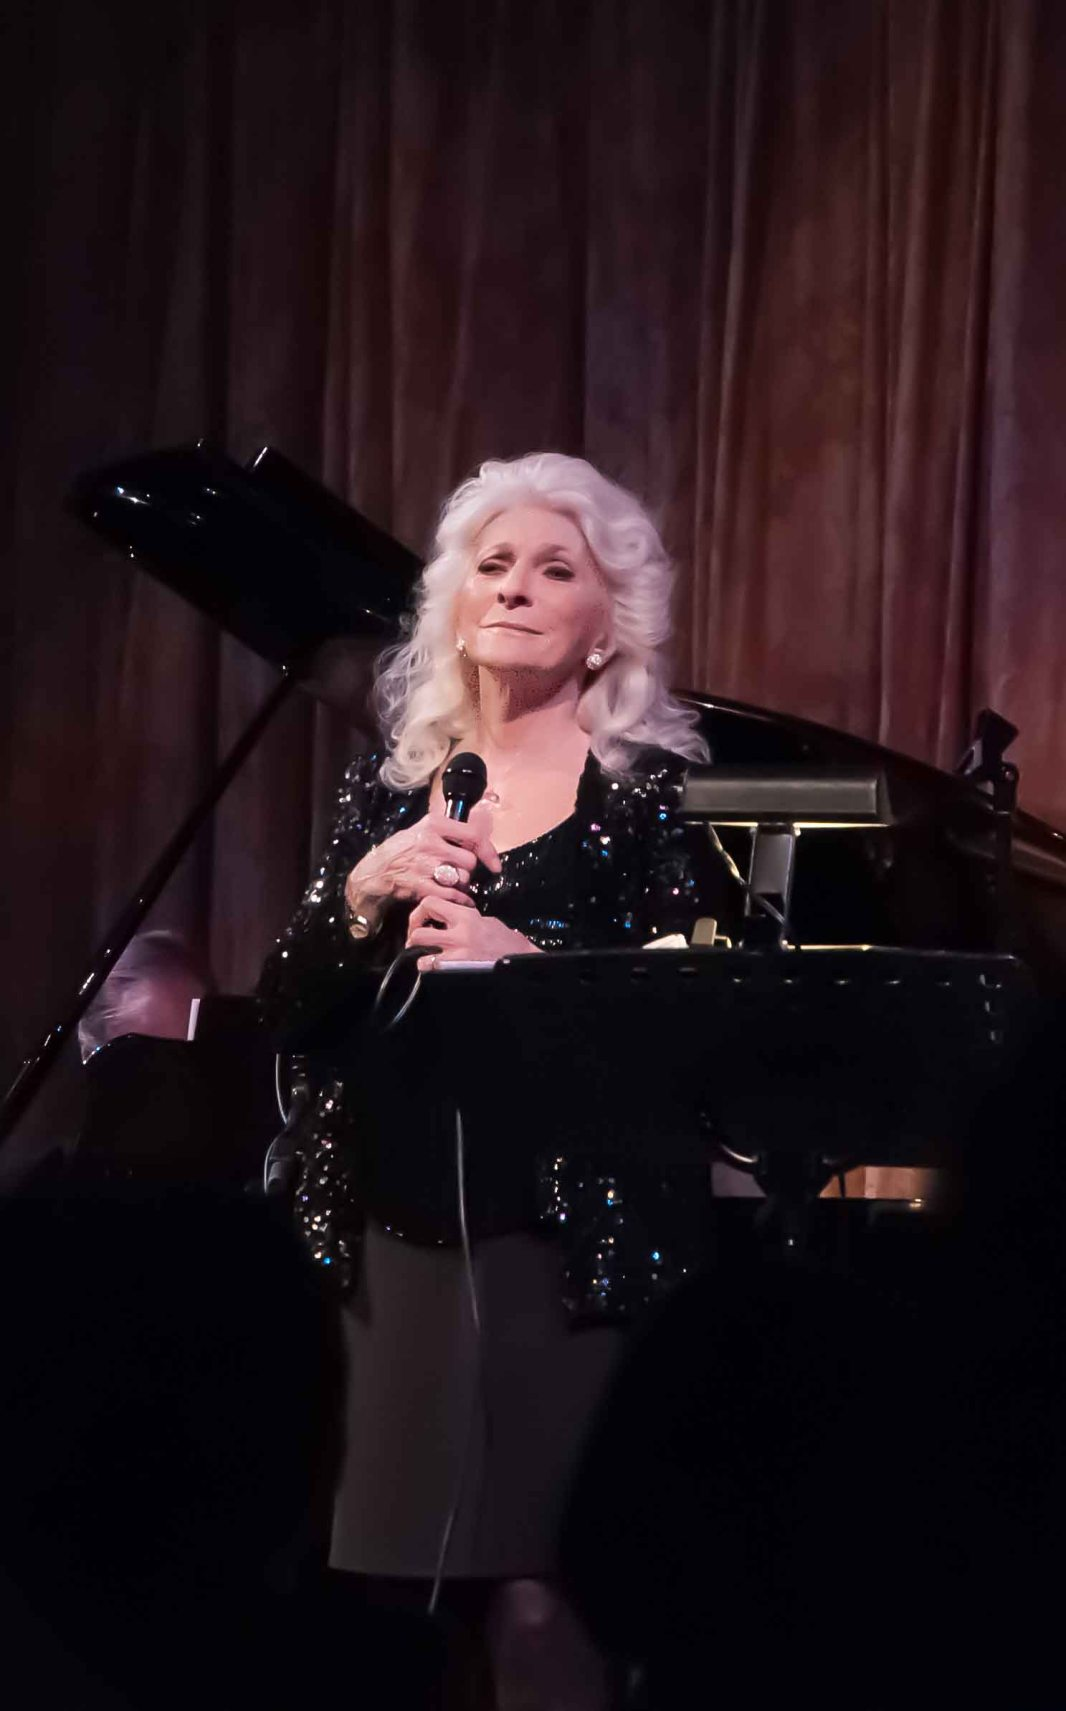 Still gorgeous, Judy Collins in the Venetian Room.